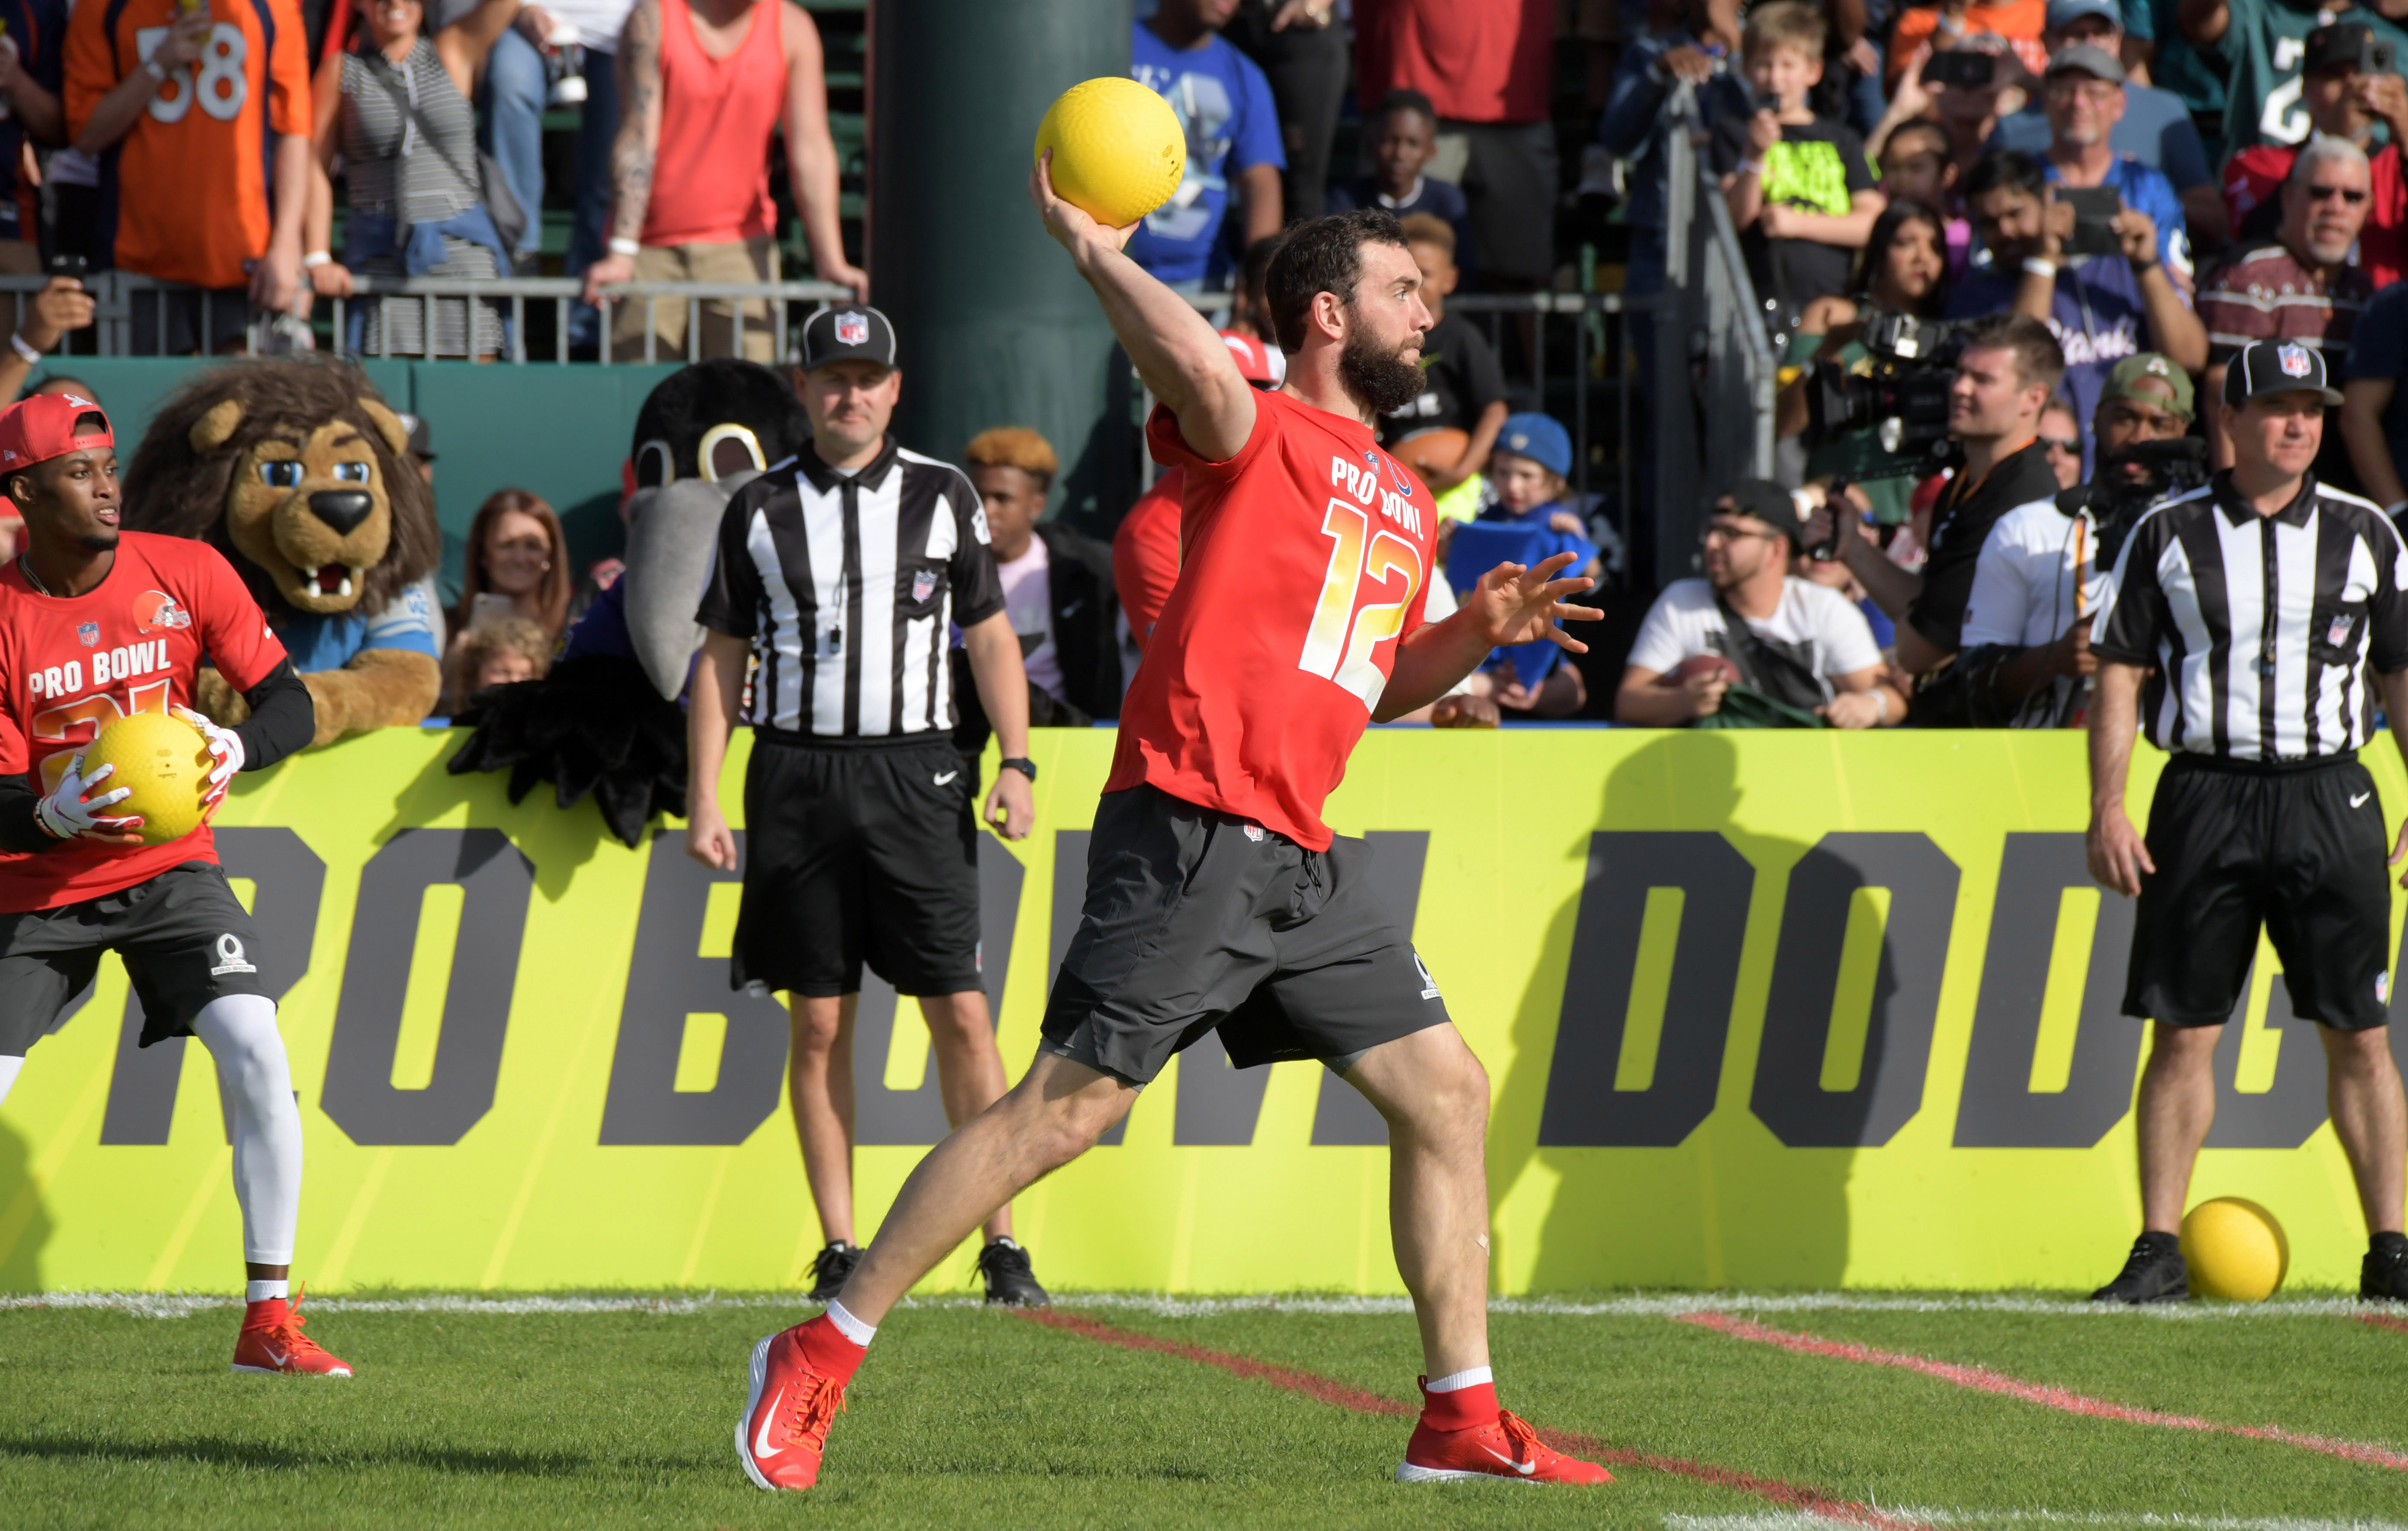 ee346729e1f The Pro Bowl should just be giant game of dodgeball instead